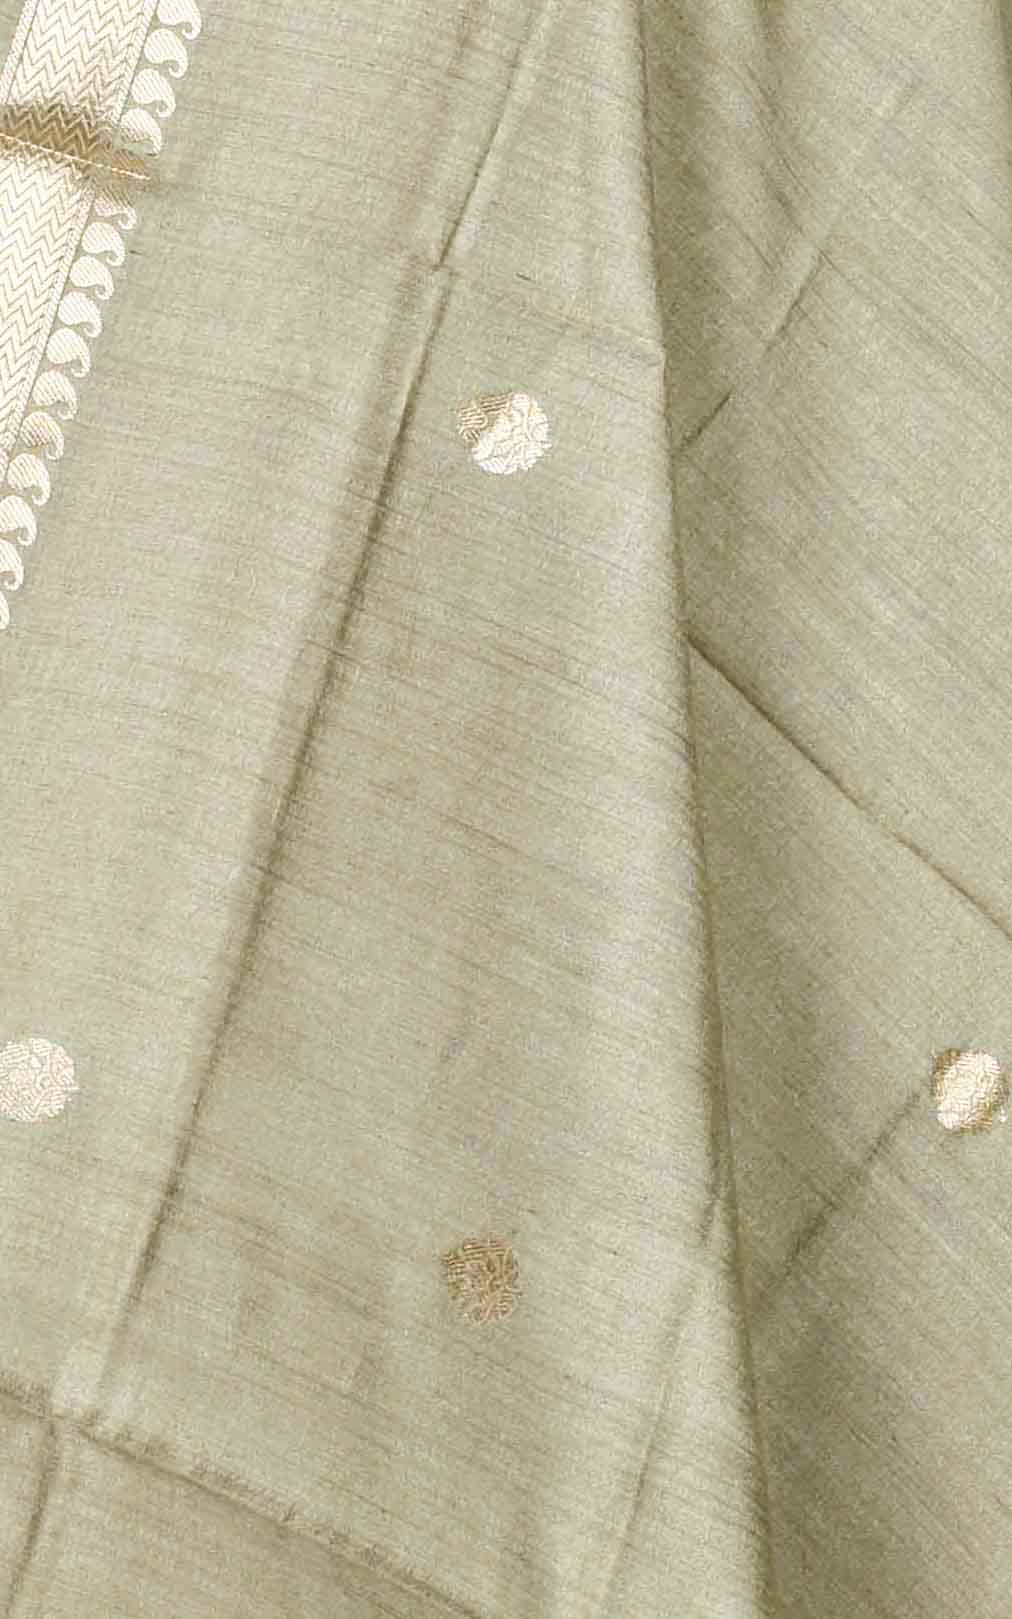 Gooseberry muga silk Banarasi dupatta with small leaf shape booti (2) Close up